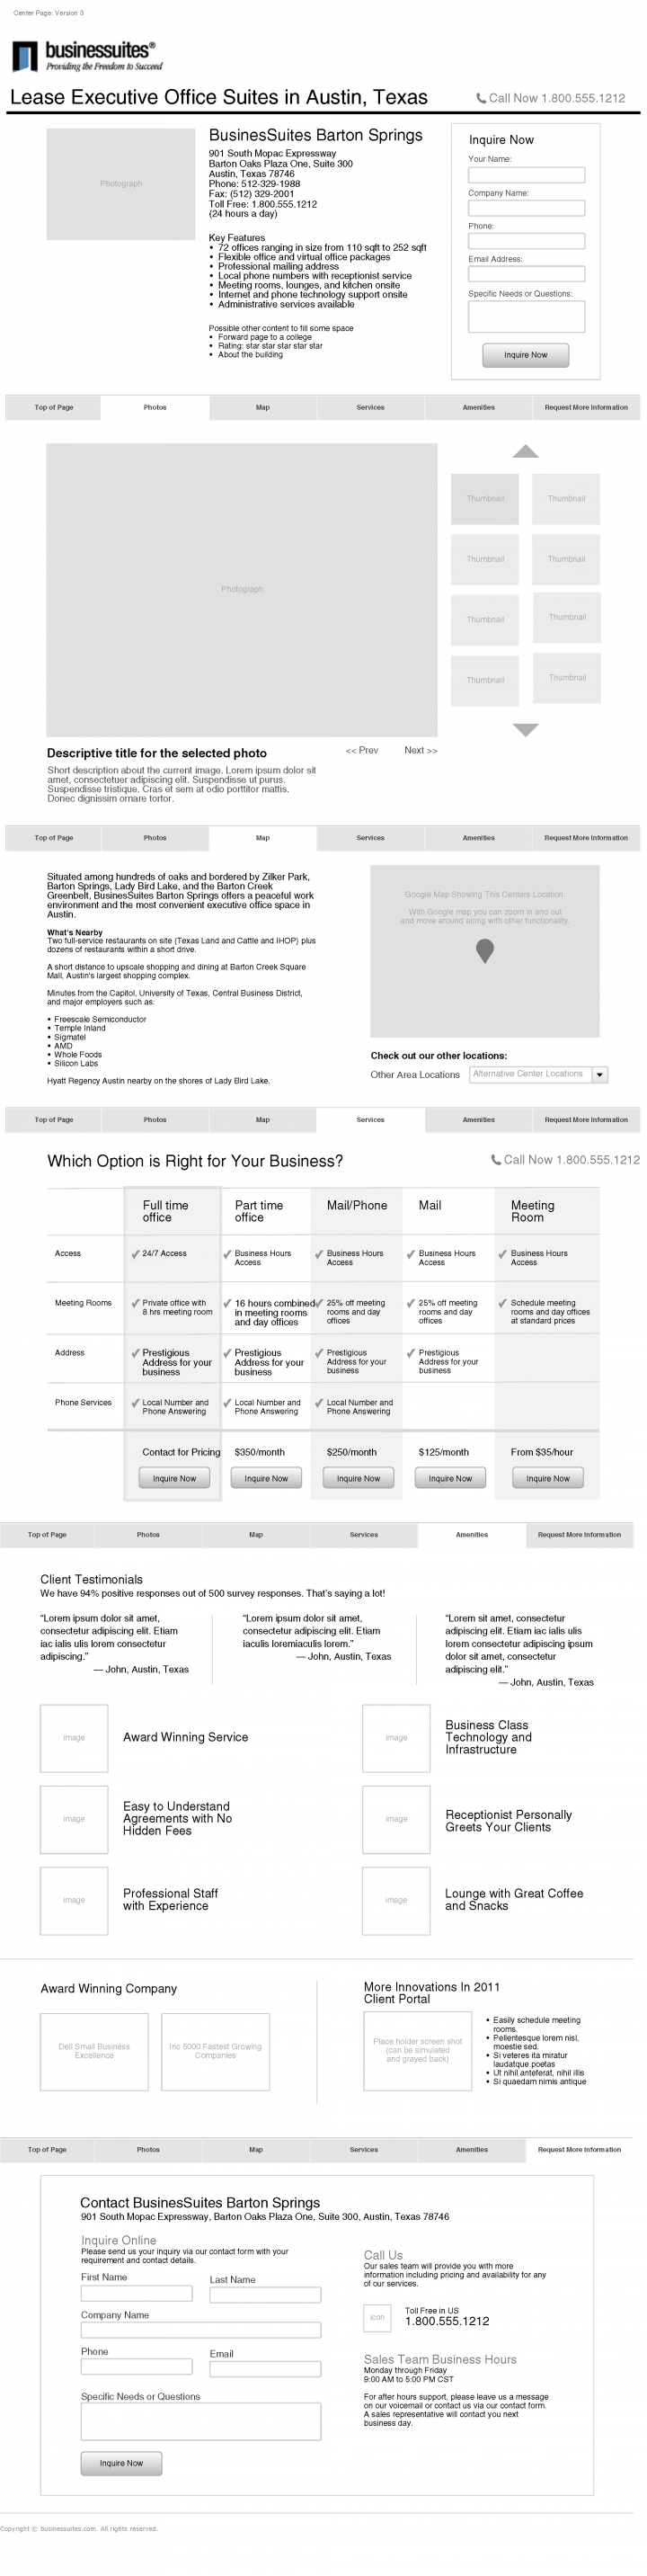 BusinesSuites Website Redesign Initial Subpage Wireframe Alternatives